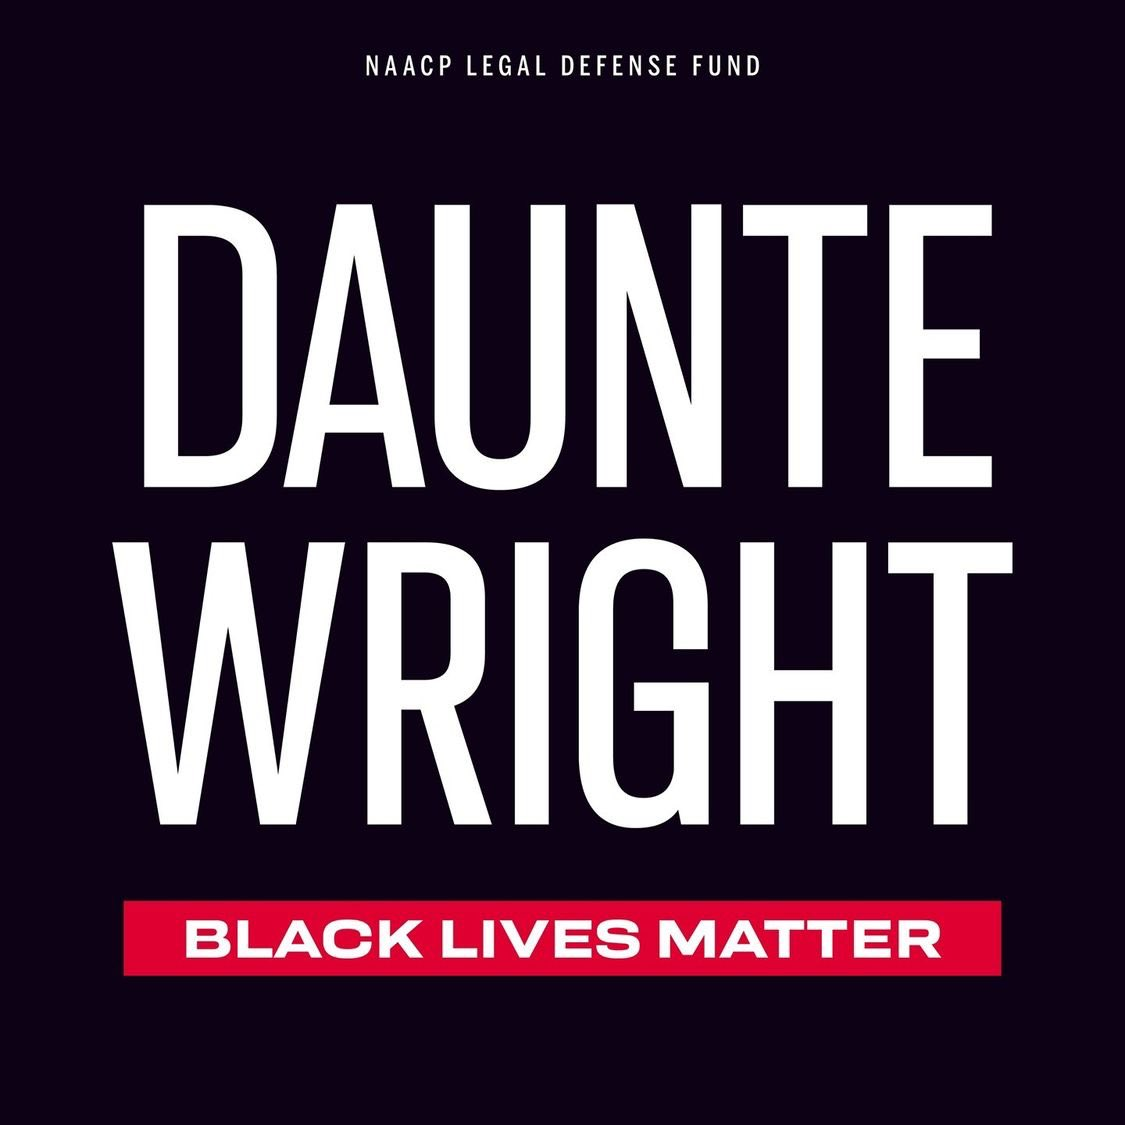 There are no words that haven't already been said. We need change, accountability and justice. #JusticeforDaunteWright